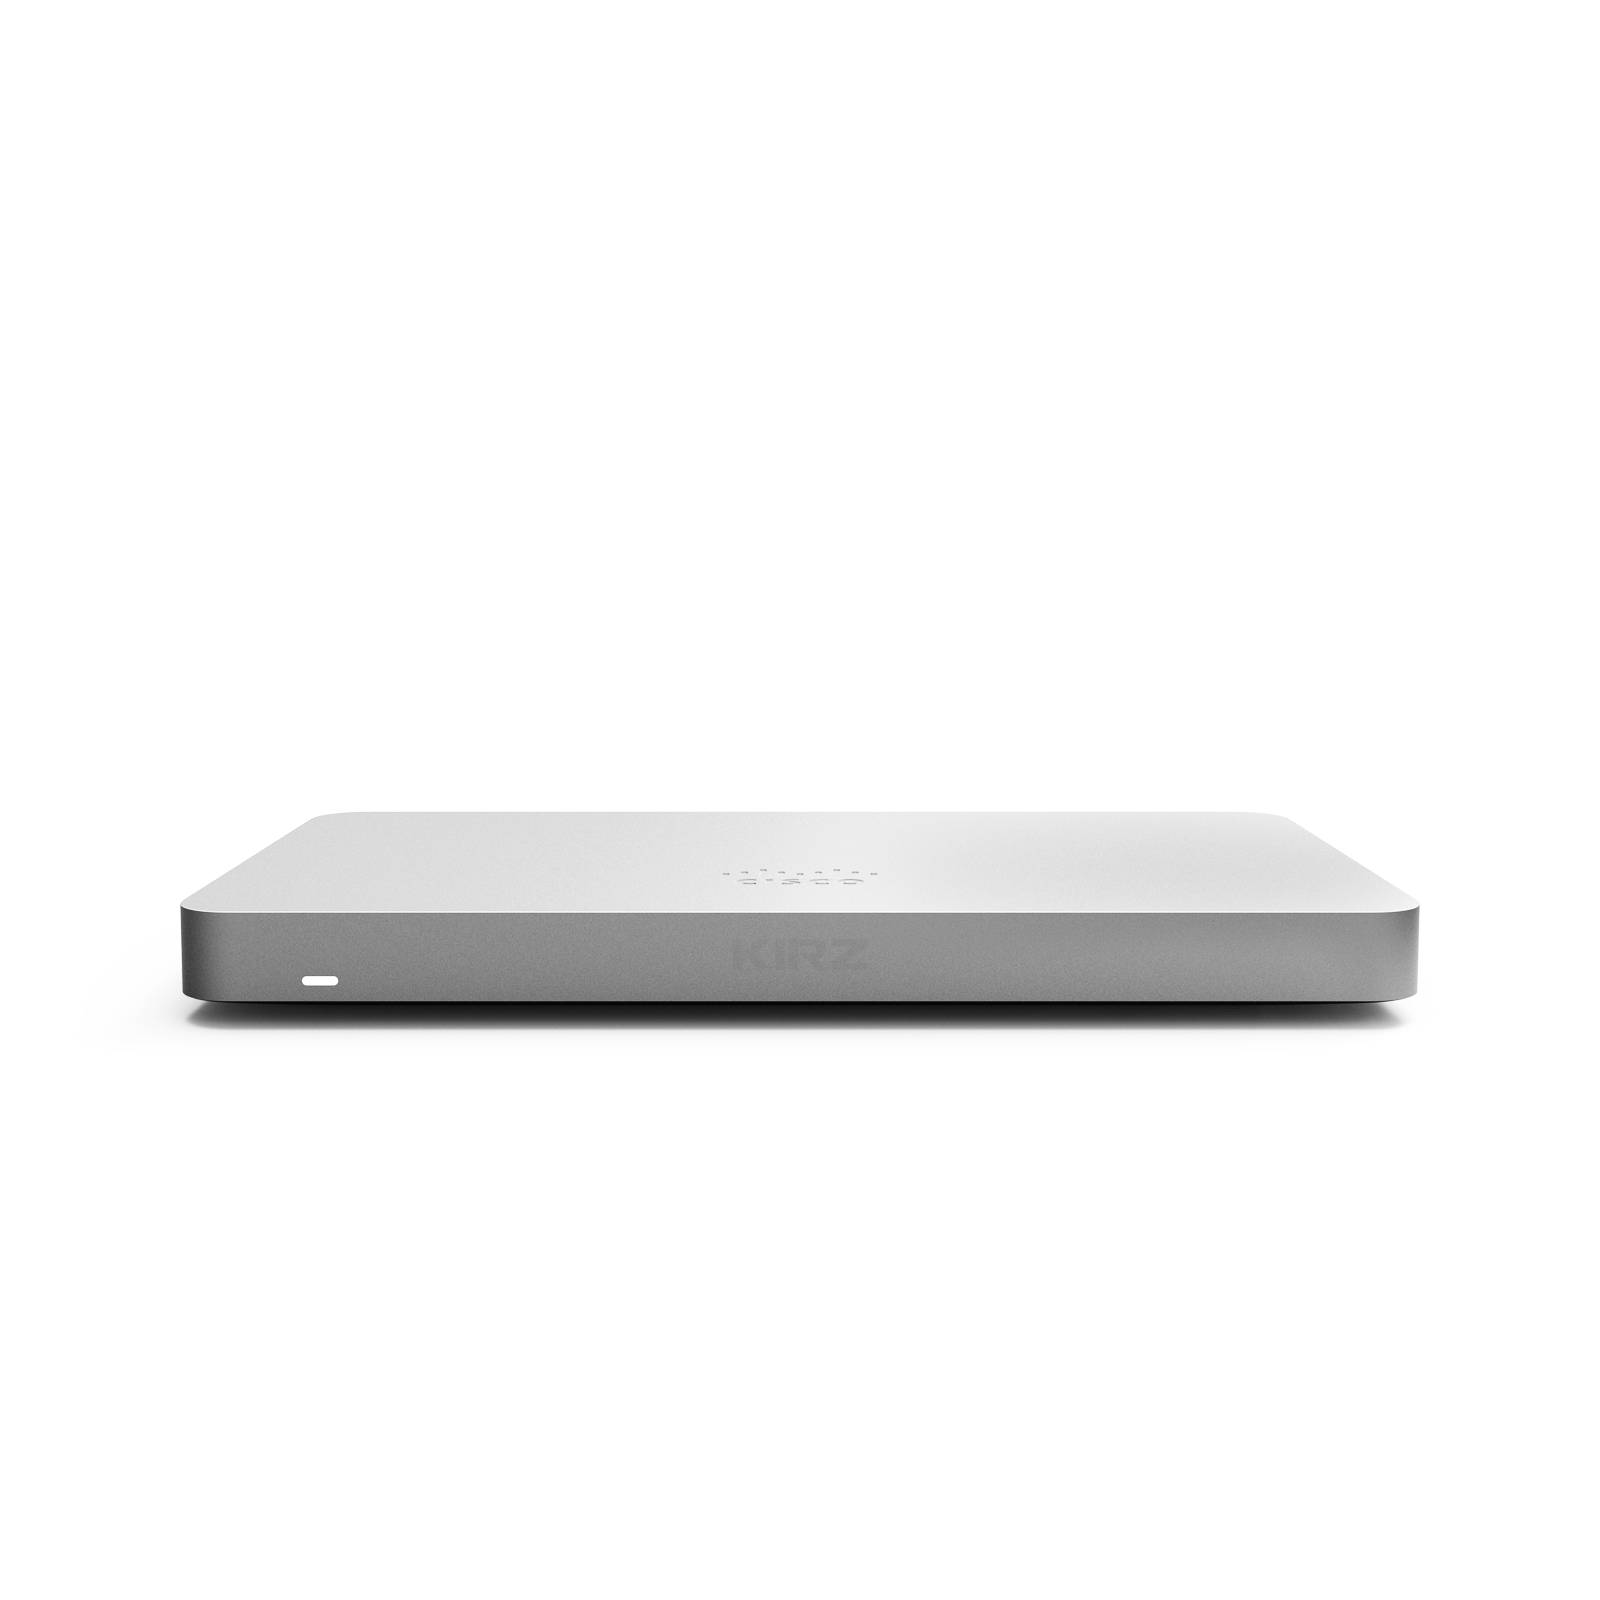 Cisco Meraki MX68 Security Appliance and SD-WAN